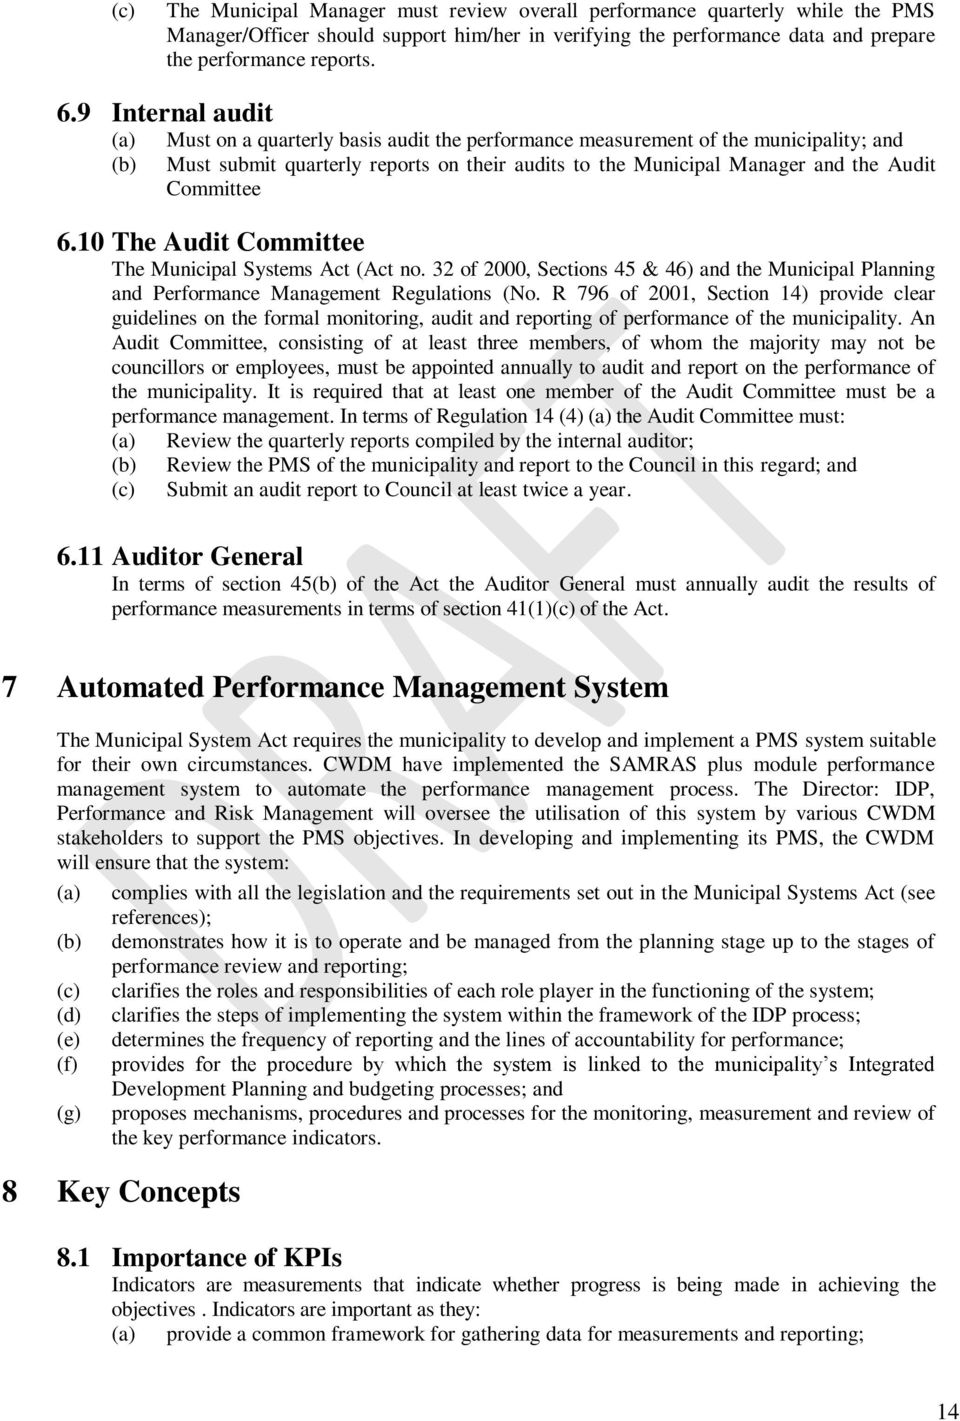 10 The Audit Committee The Municipal Systems Act (Act no. 32 of 2000, Sections 45 & 46) and the Municipal Planning and Performance Management Regulations (No.